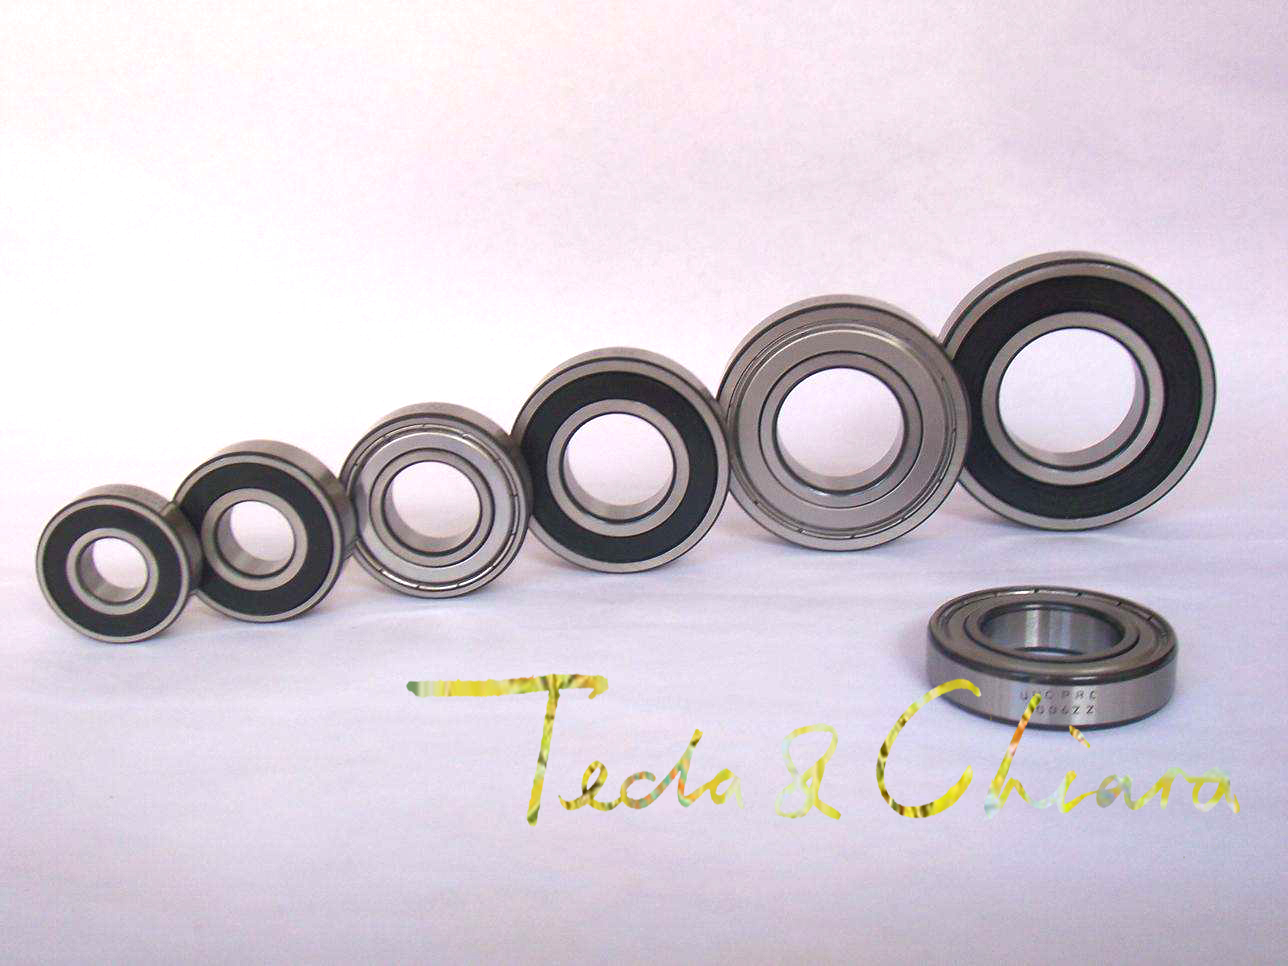 693 693zz 693rs 693-2z 693z 693-2rs Zz Rs Rz 2rz R830zz 1000093 639/3zz Deep Groove Ball Bearings 3 X 8 X 4mm Home Improvement